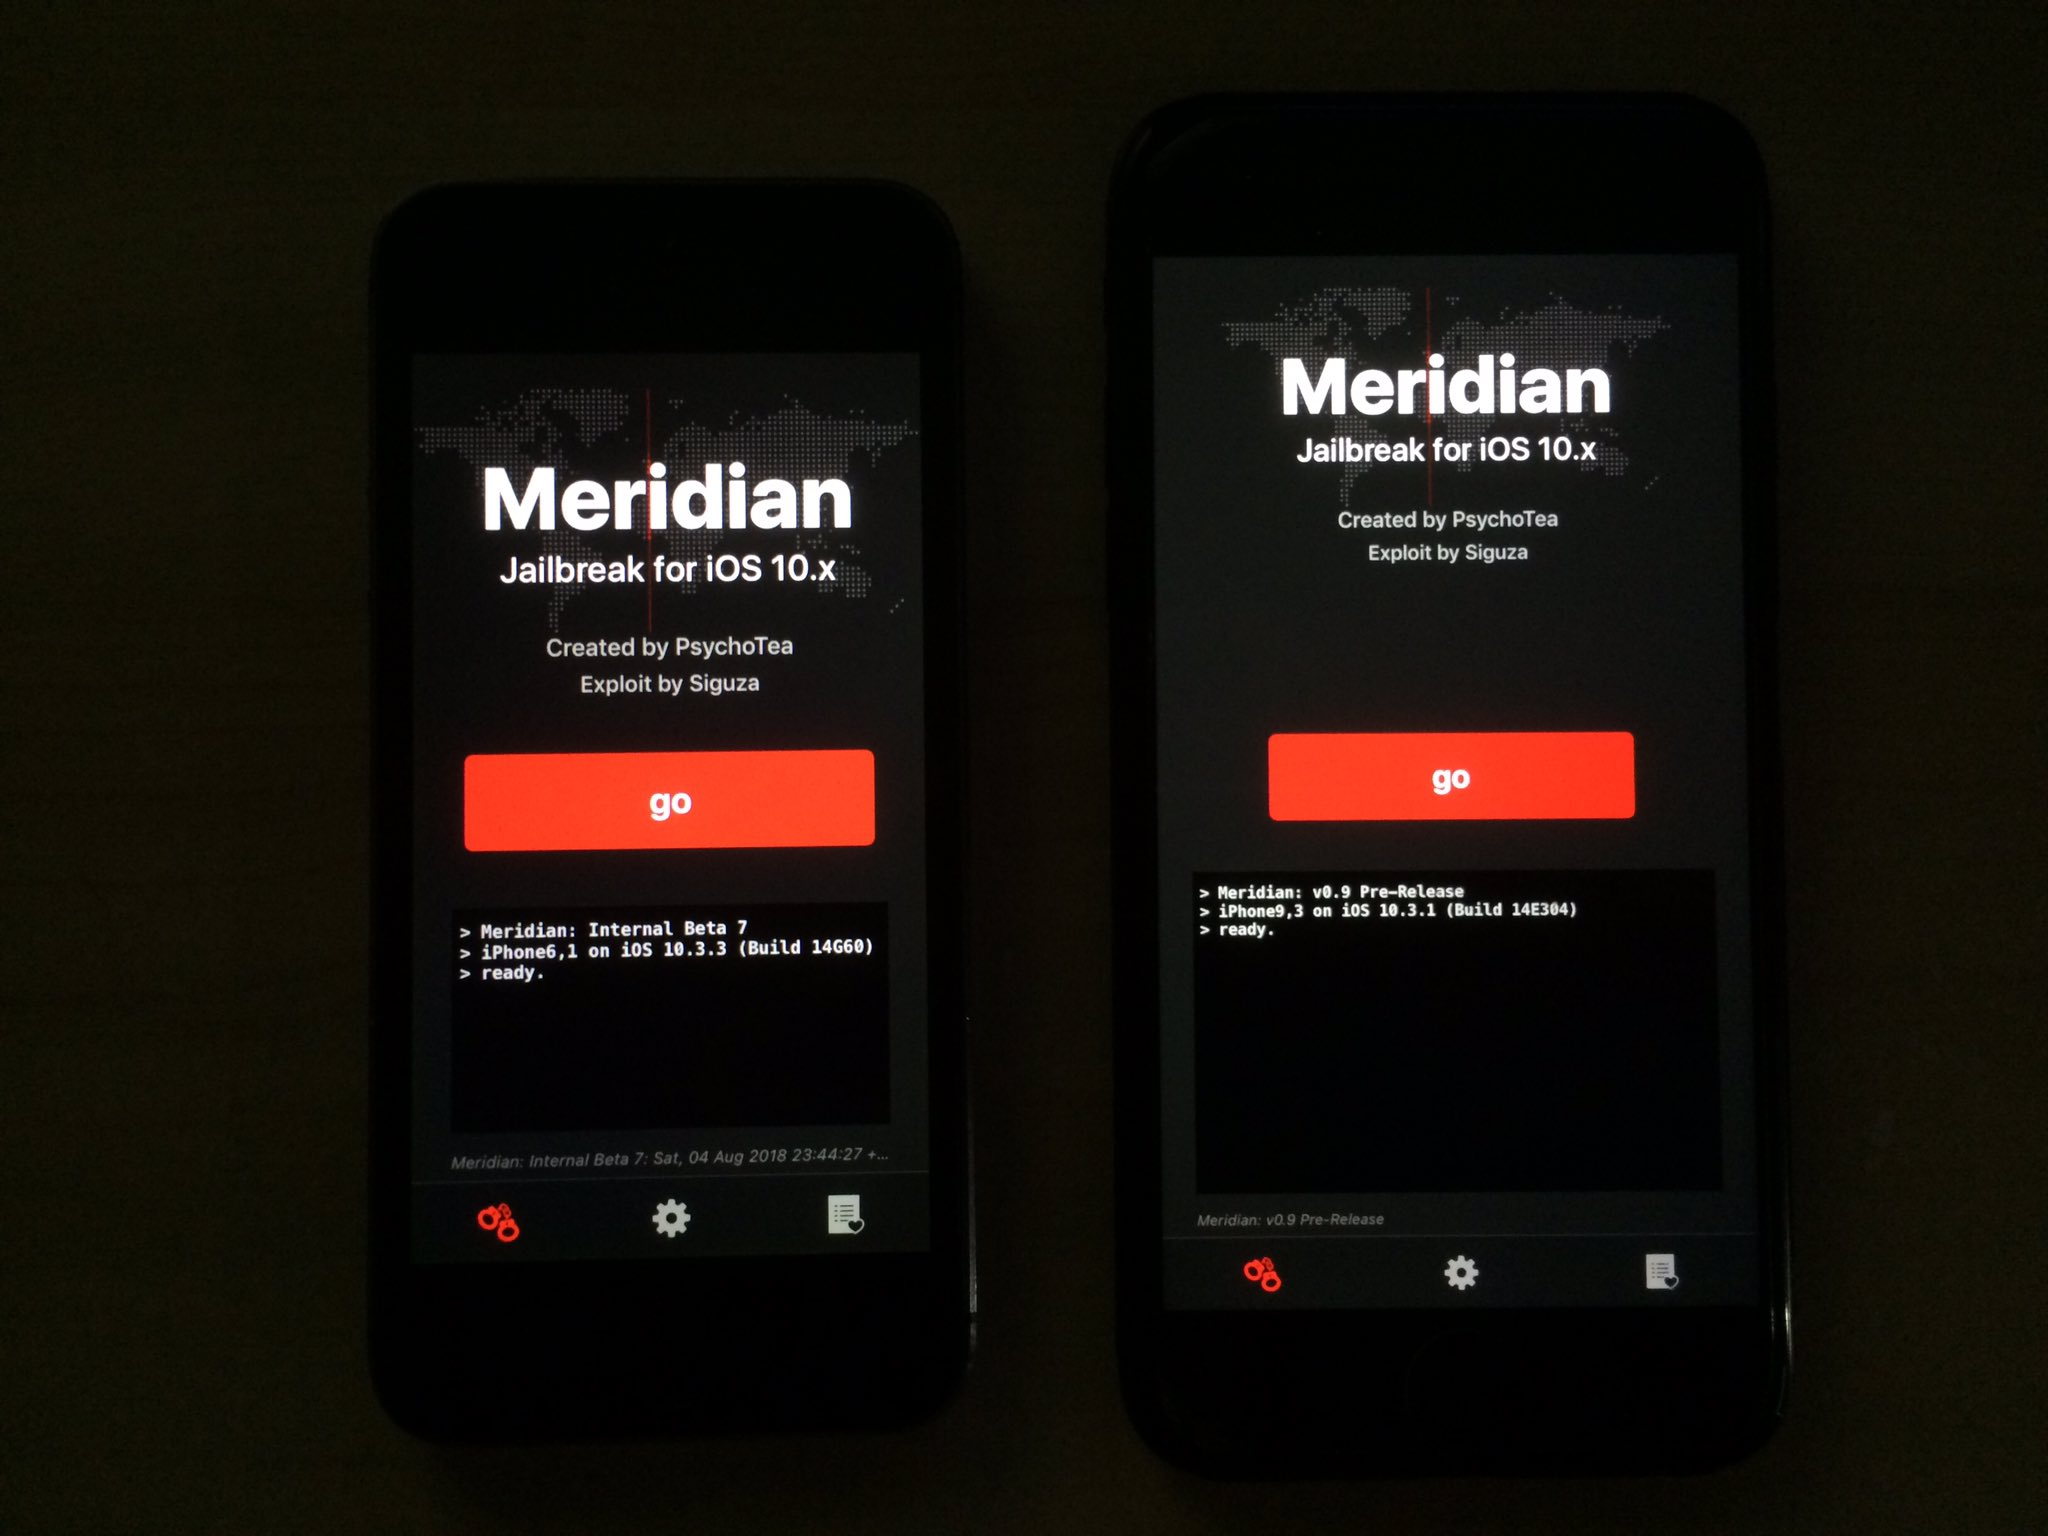 Meridian iOS 10 x jailbreak released with support for all 64